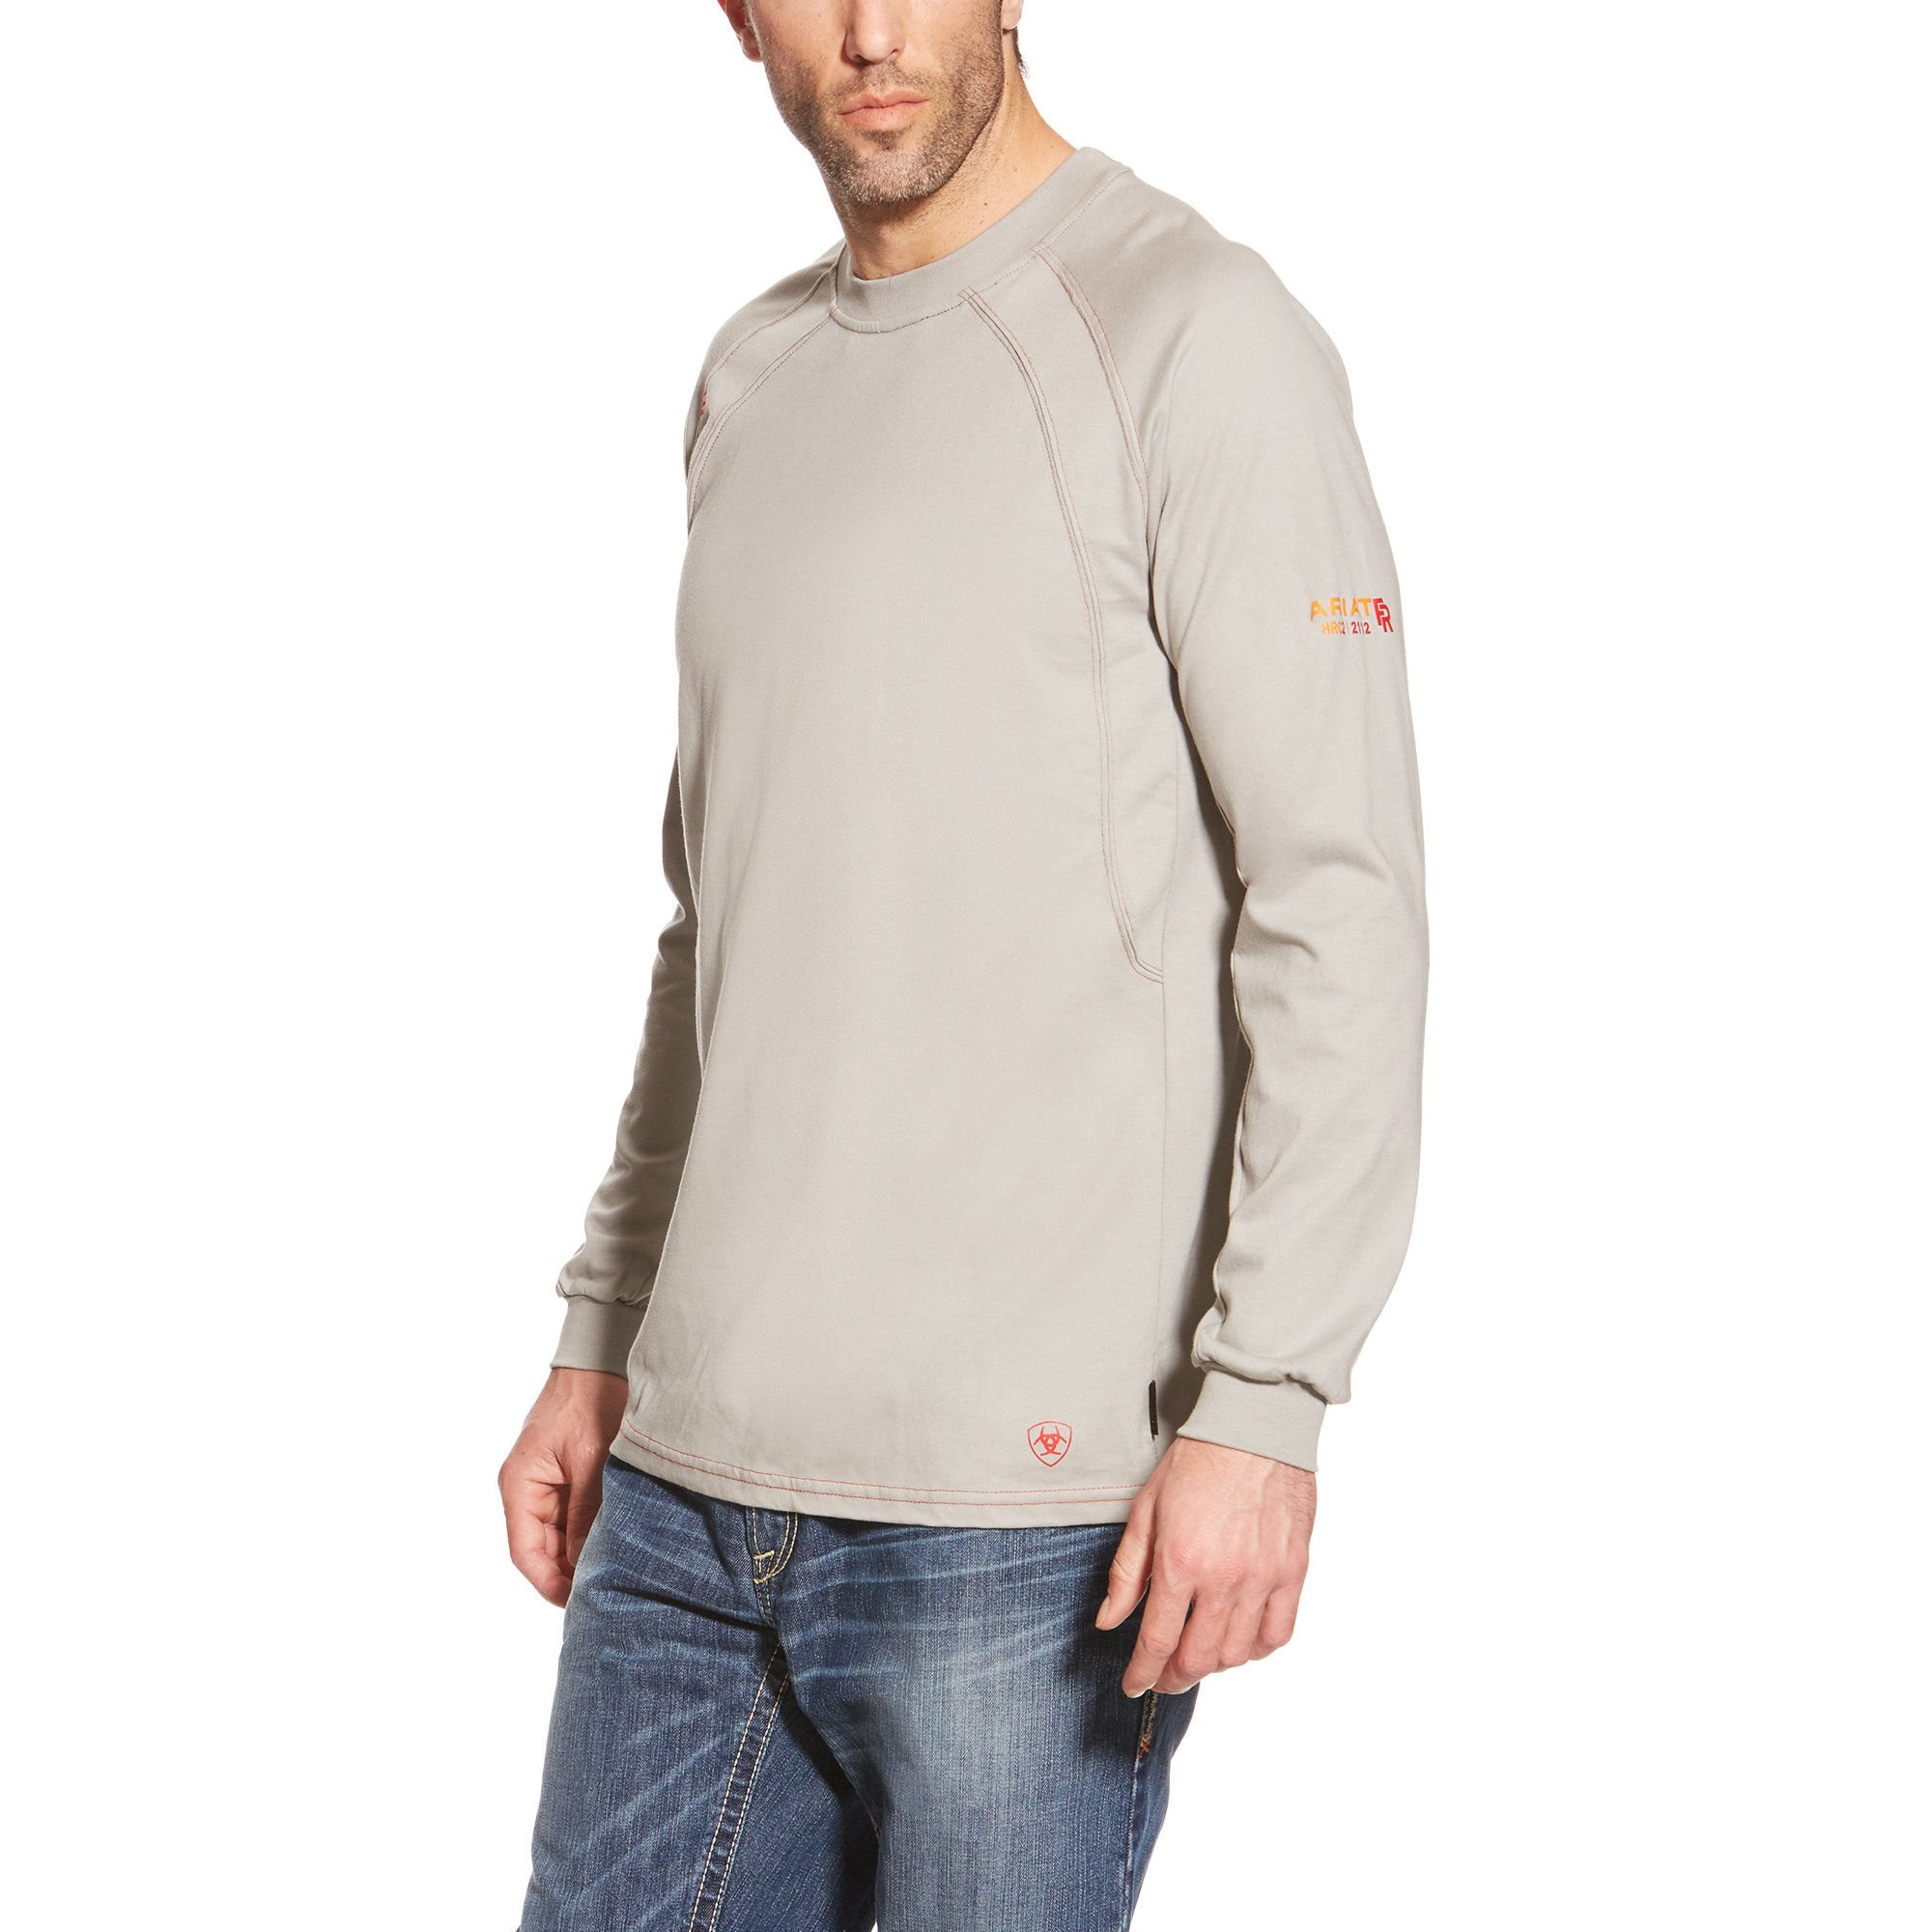 Ariat Men's Flame Resistant Long Sleeve Work Crew, Silver Fox, Large